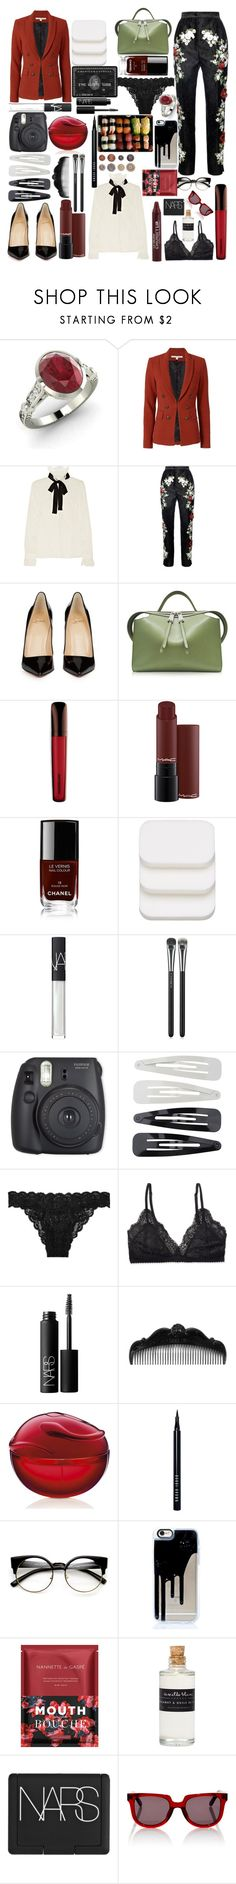 """Untitled #49"" by bianca0813 ❤ liked on Polyvore featuring Diamondere, Veronica Beard, Dolce&Gabbana, Christian Louboutin, Jil Sander, Chanel, COVERGIRL, NARS Cosmetics, MAC Cosmetics and Forever 21"